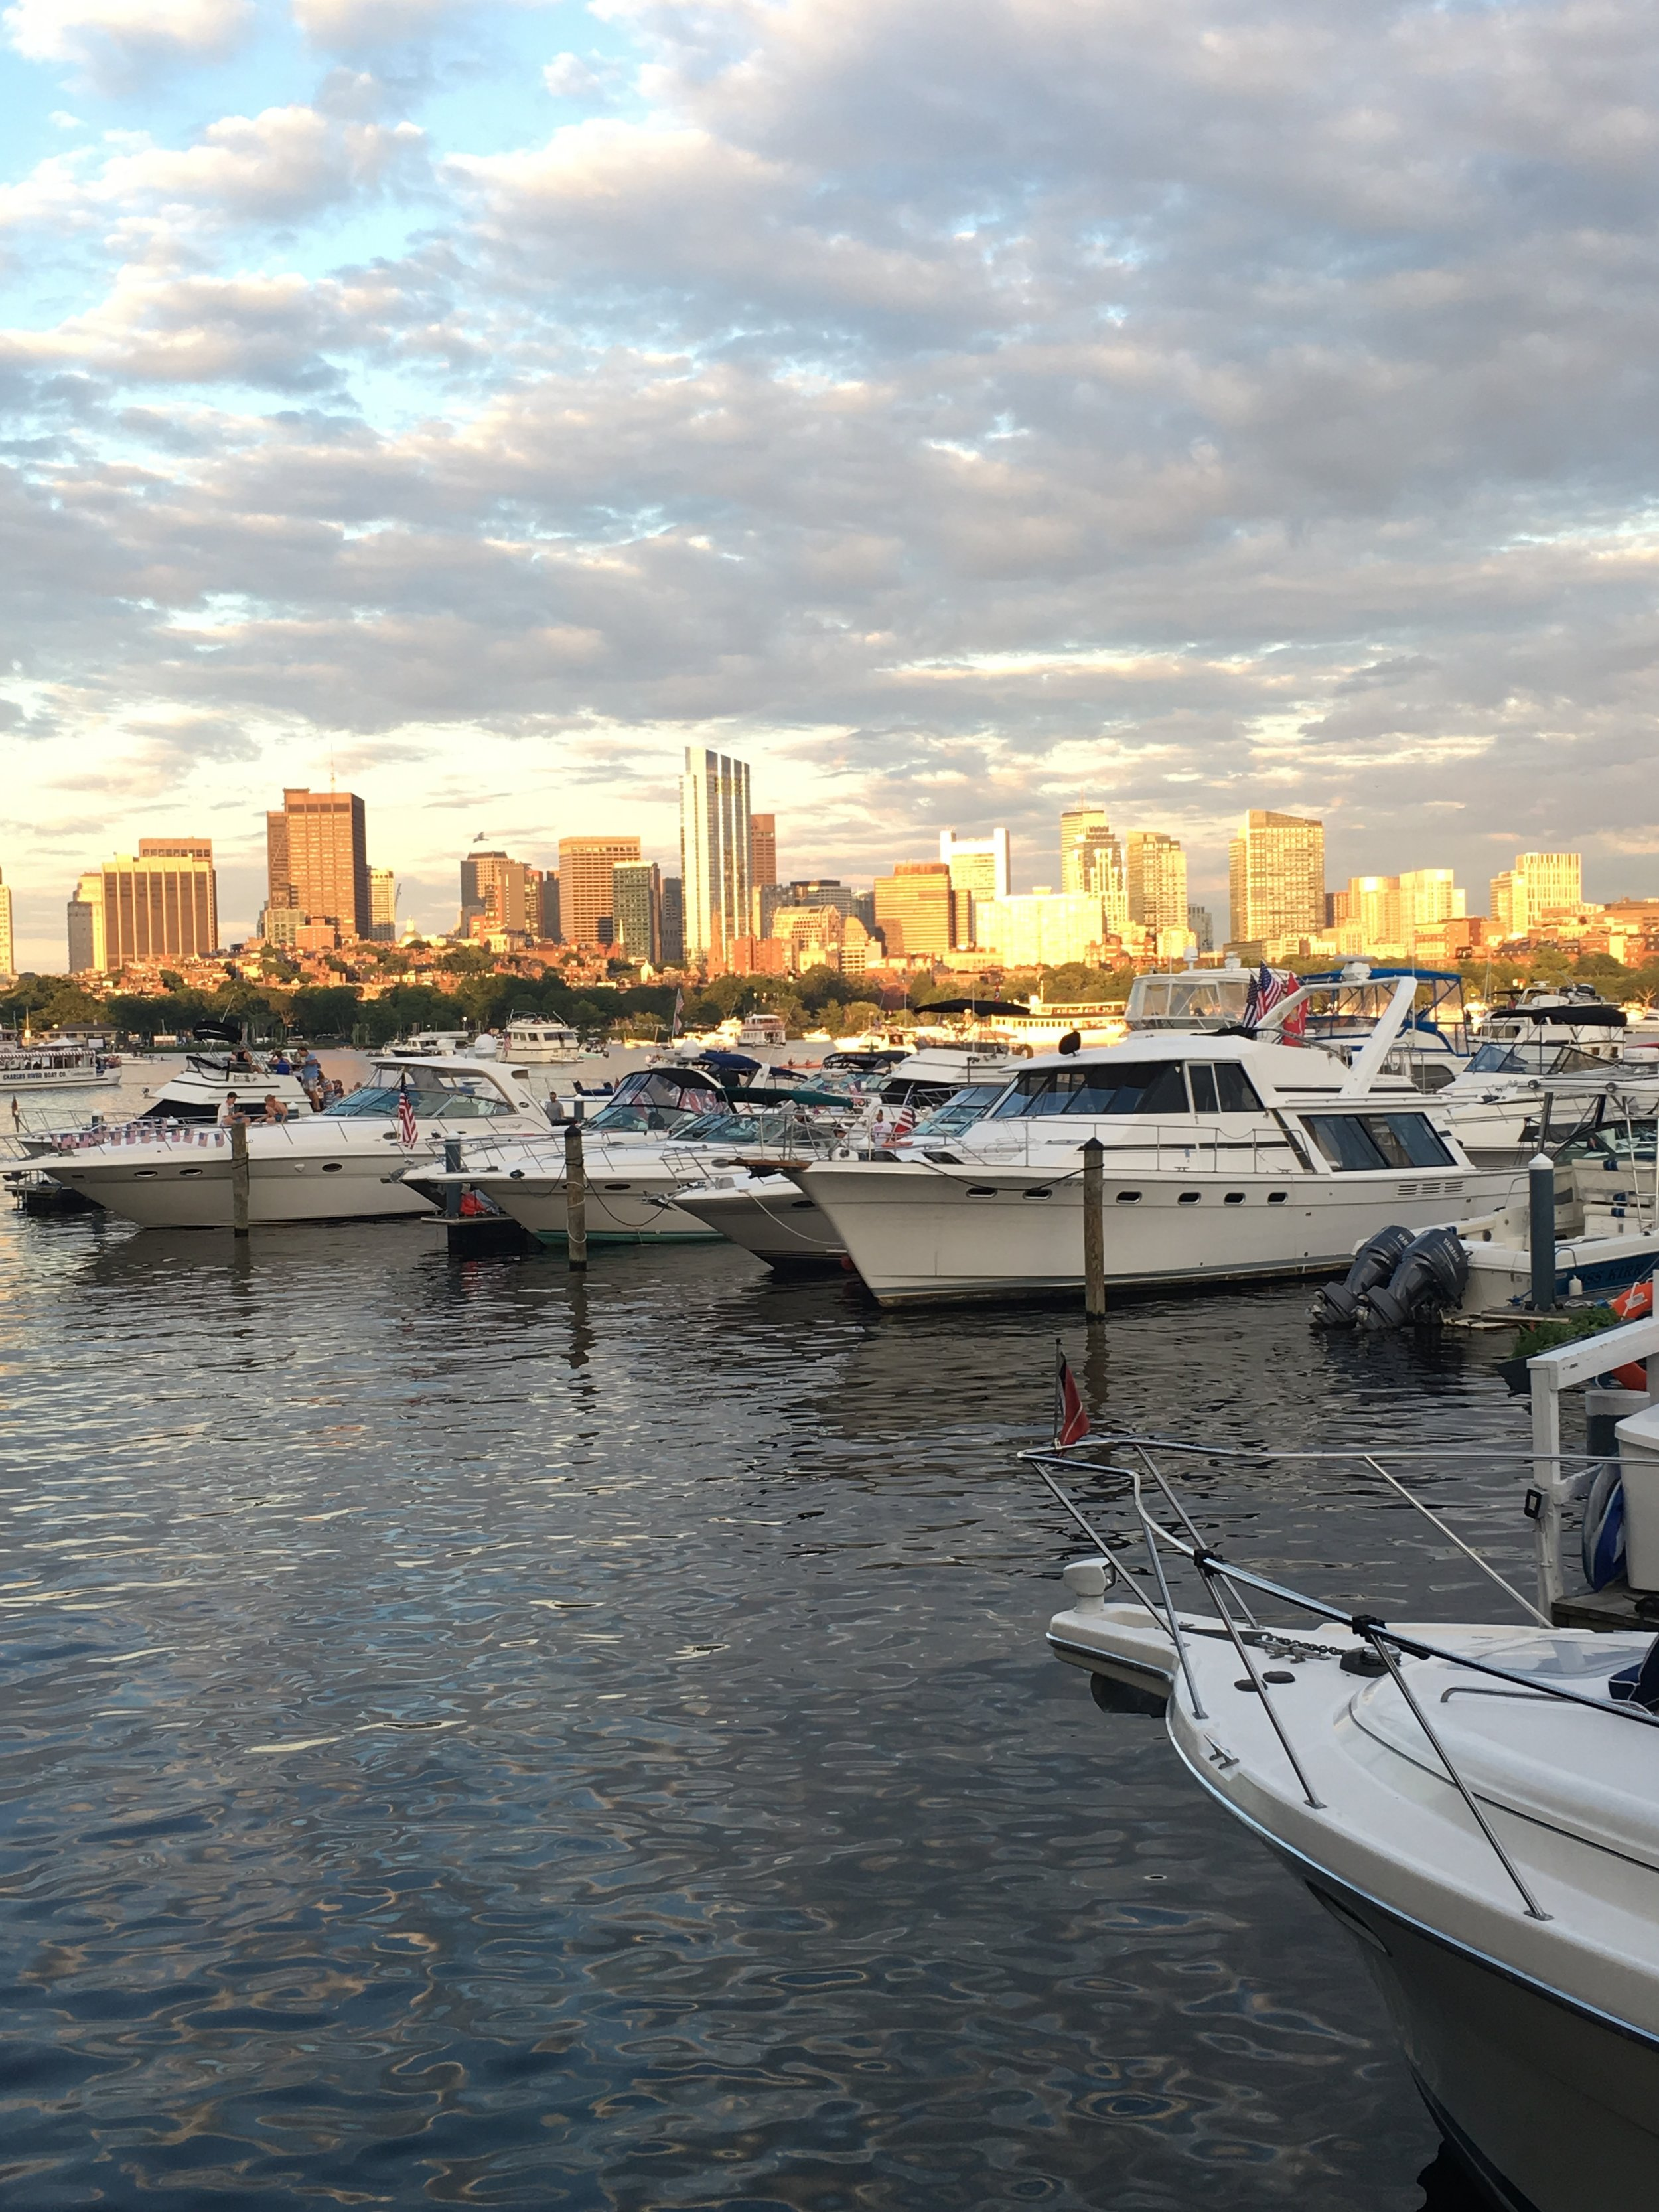 Spending the fourth in the place that started the Revolution, on the banks of the Charles River, Boston, MA